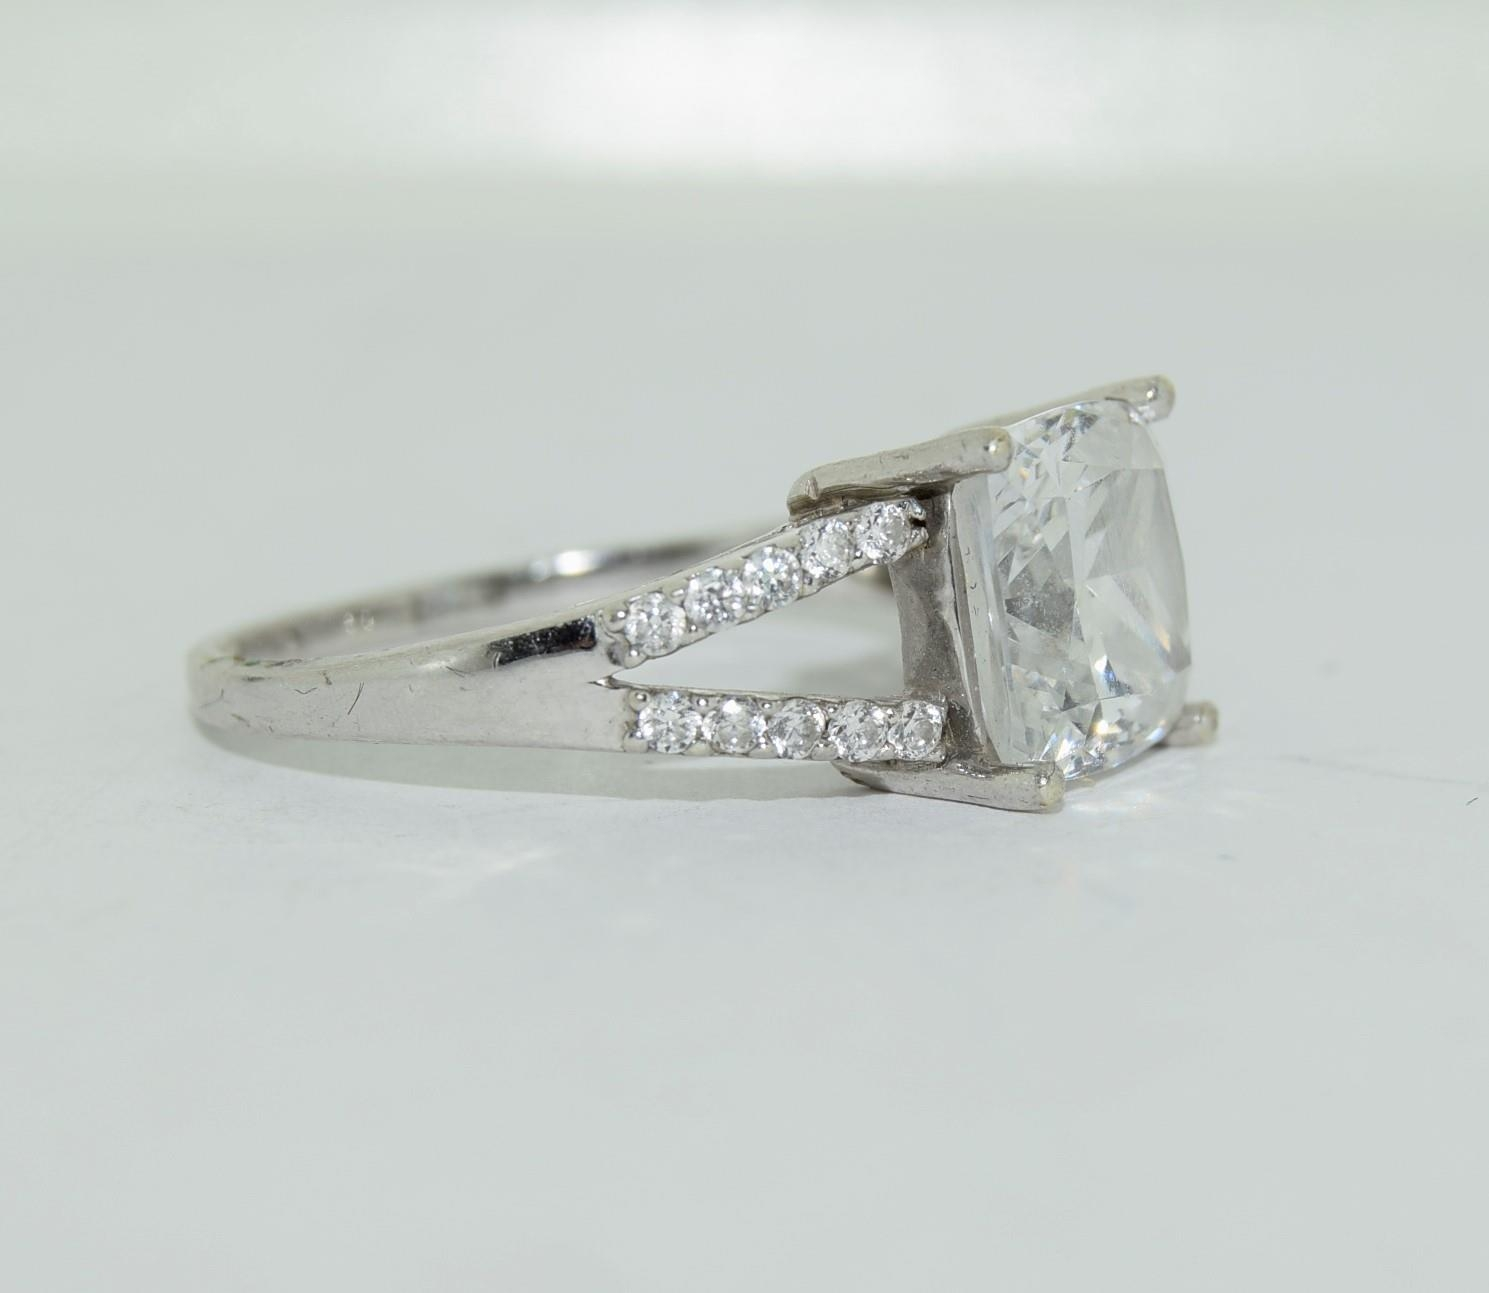 9ct white gold ladies square set solitare ring size R - Image 10 of 12